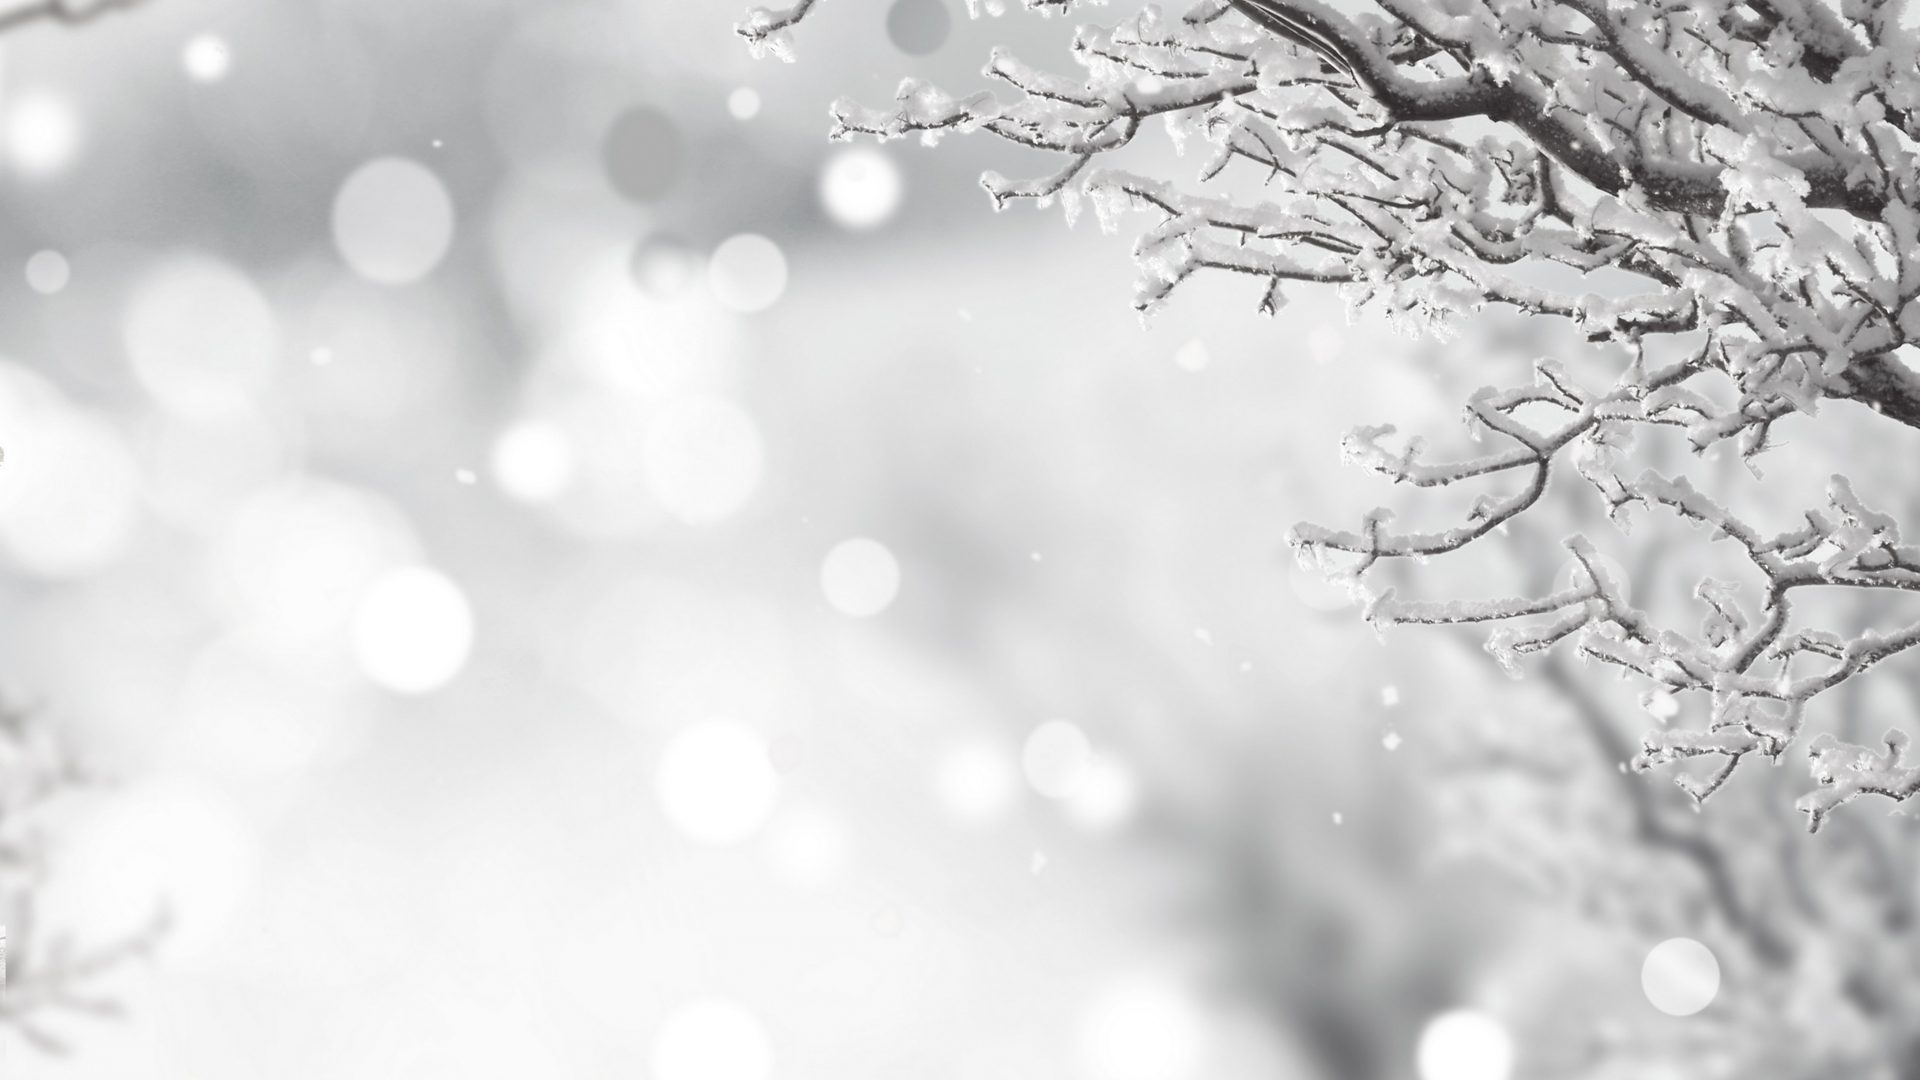 322 3221053 free desktop wallpaper winter holiday black and white